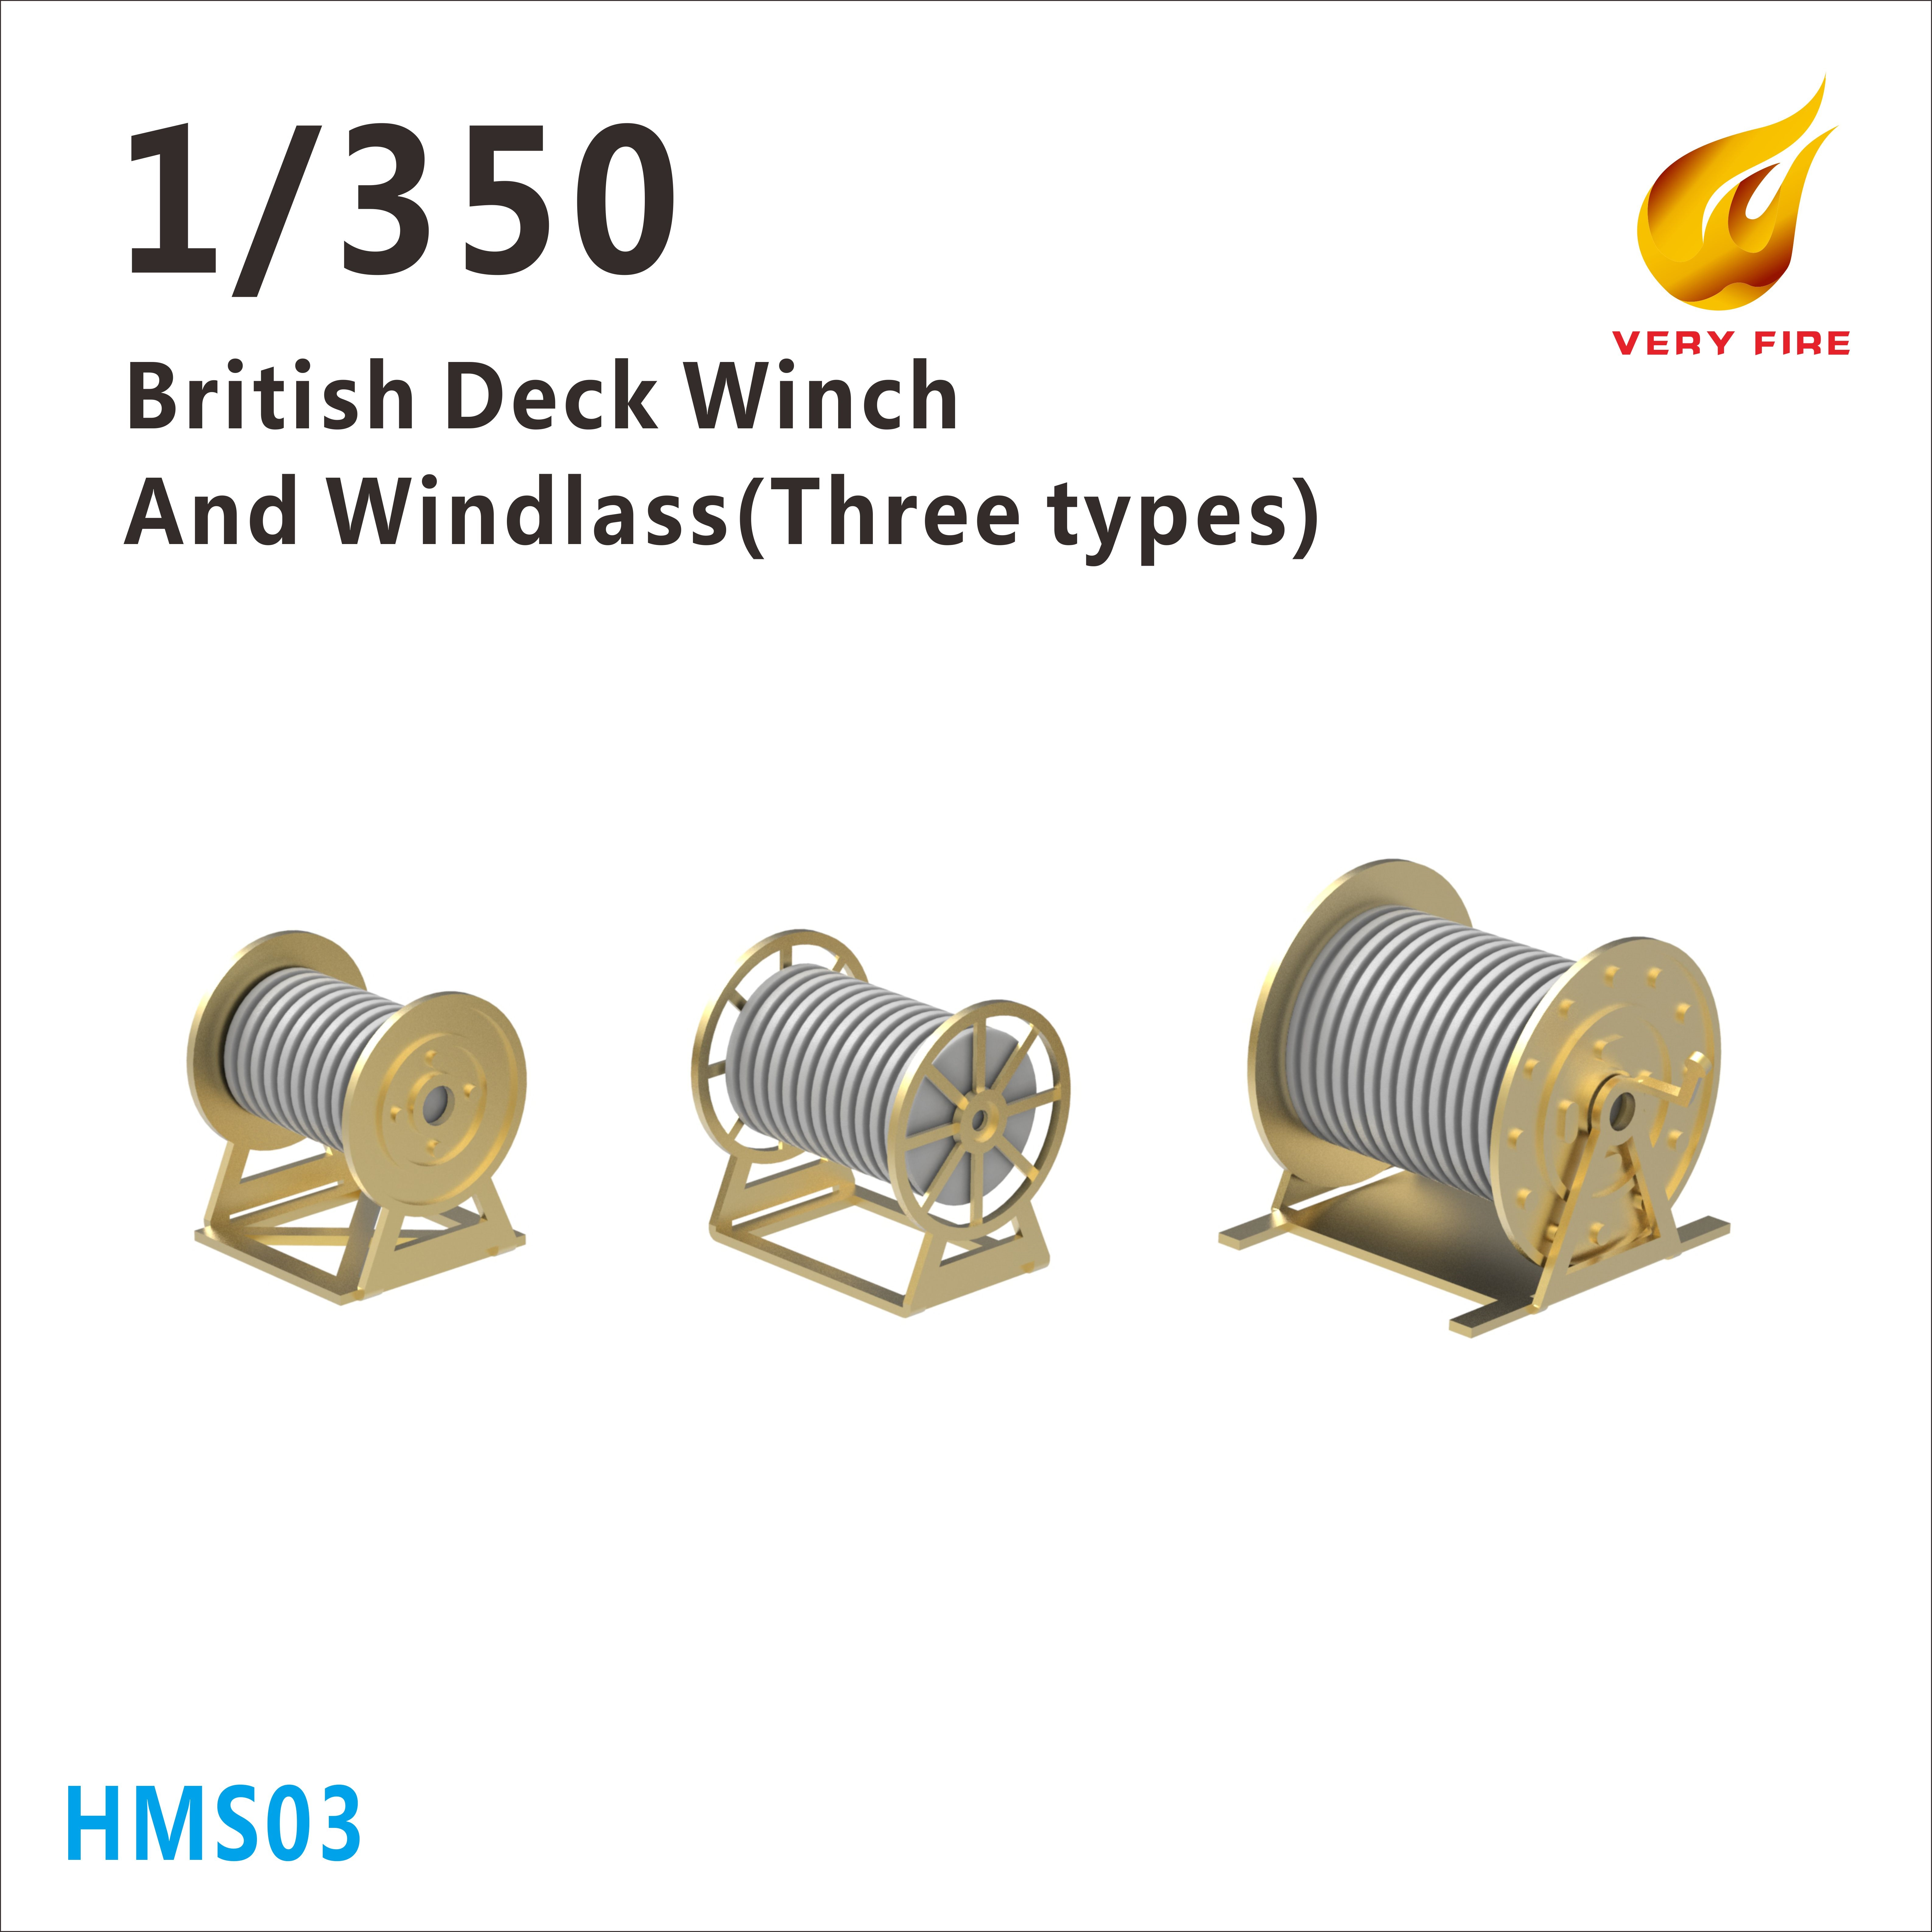 Very Fire 1/350 HMS British Deck Winch and Windlass (3 Types, 23 Sets)